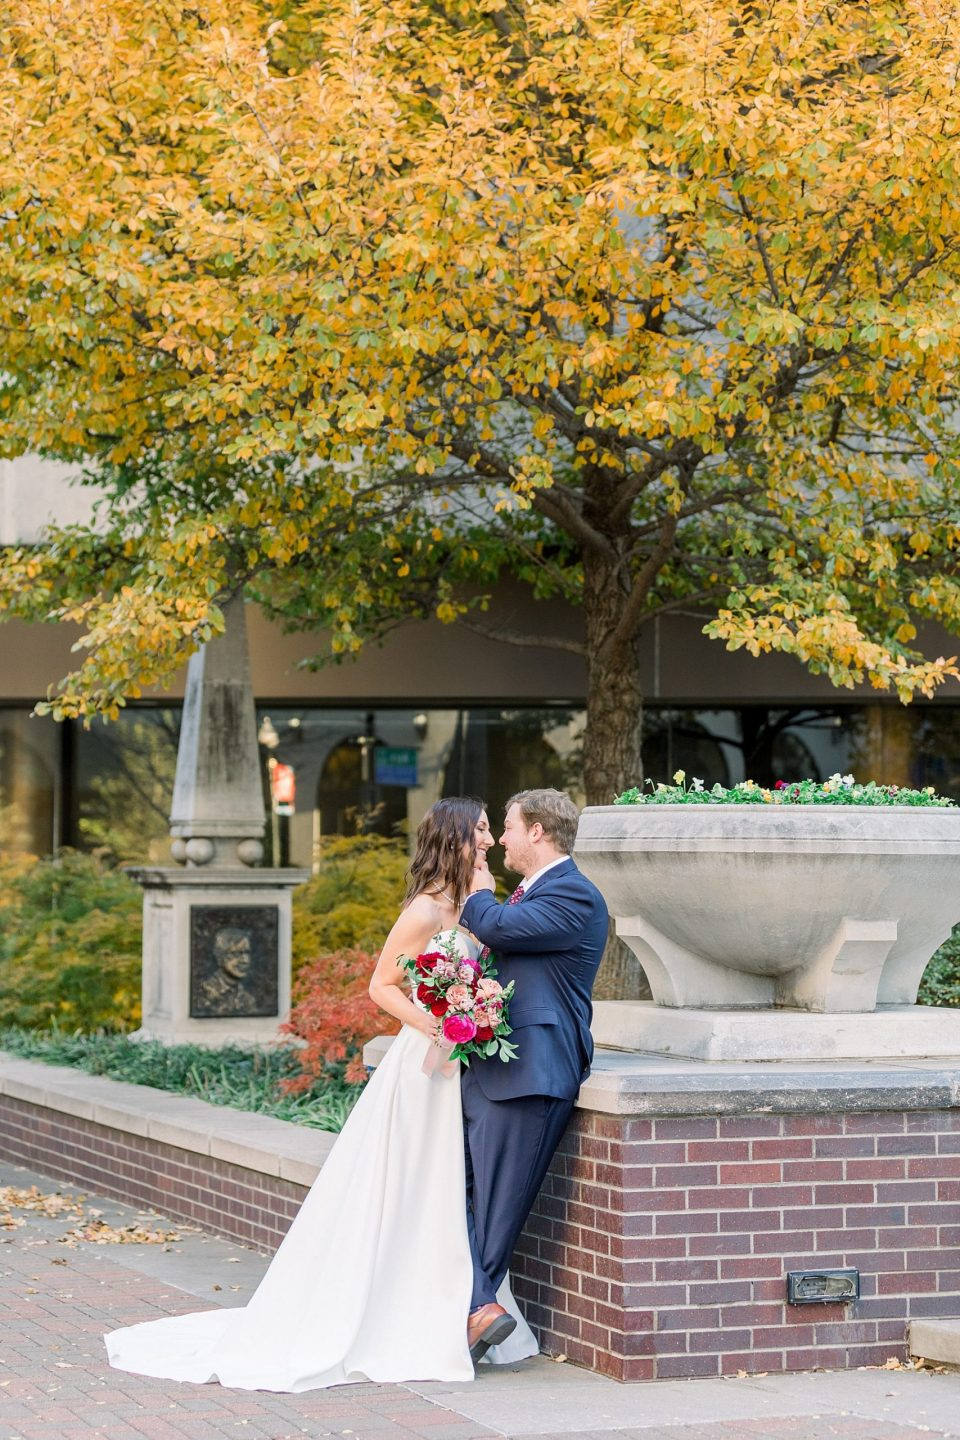 Bride and groom kiss under yellow tree in downtown Tulsa wedding